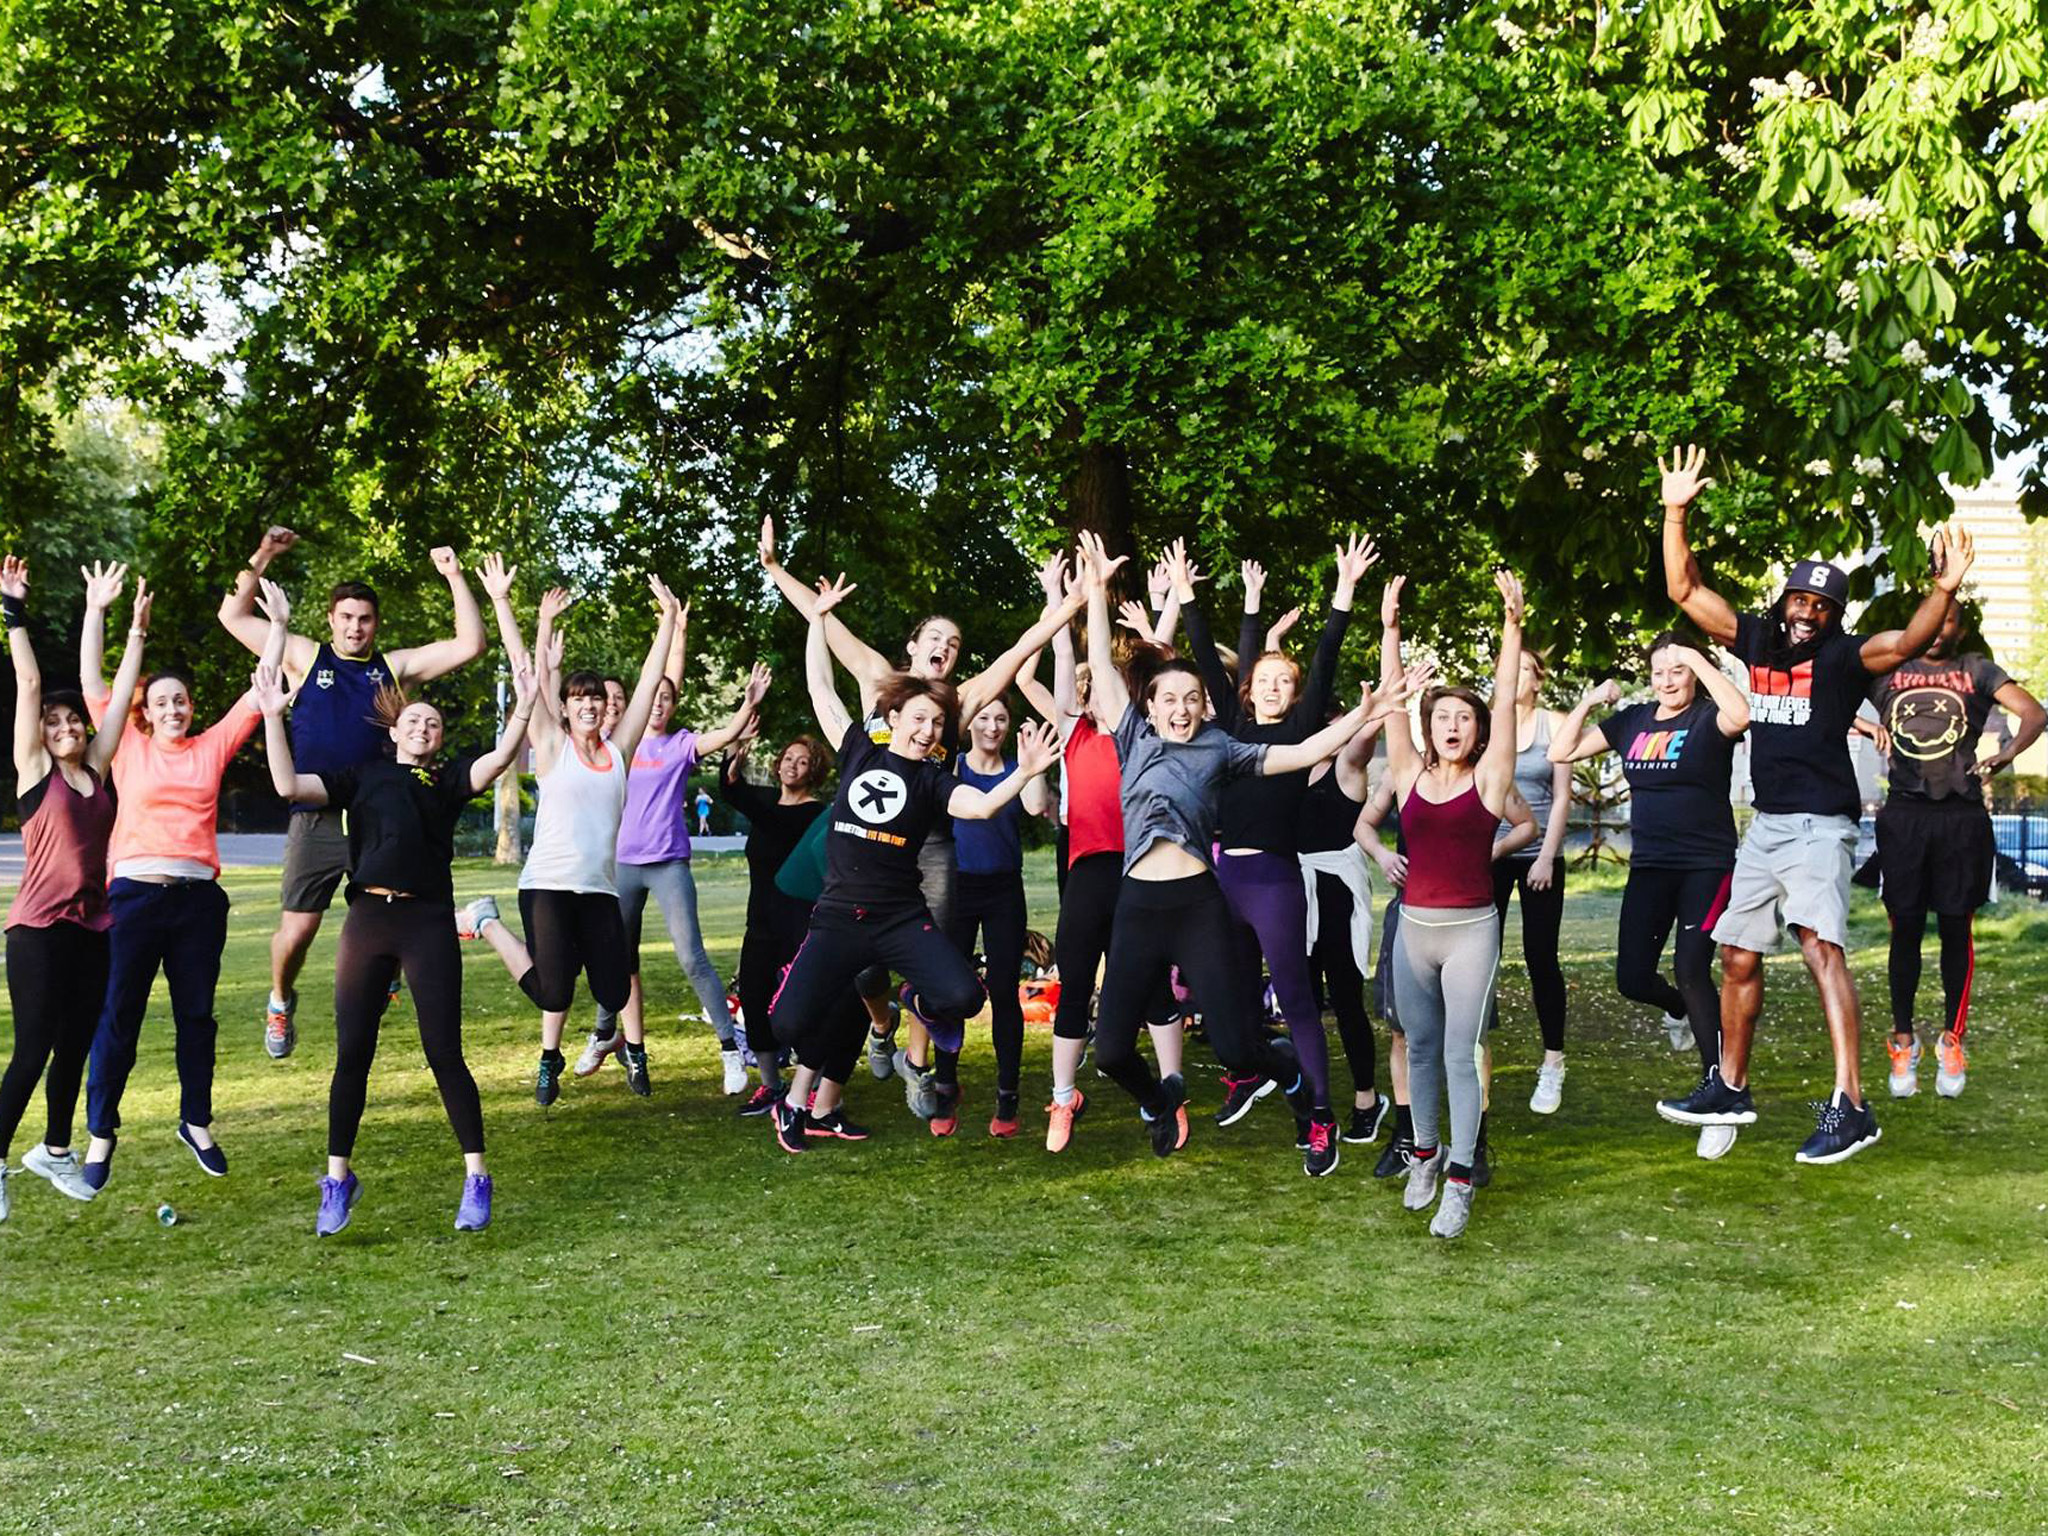 London's best free fitness classes